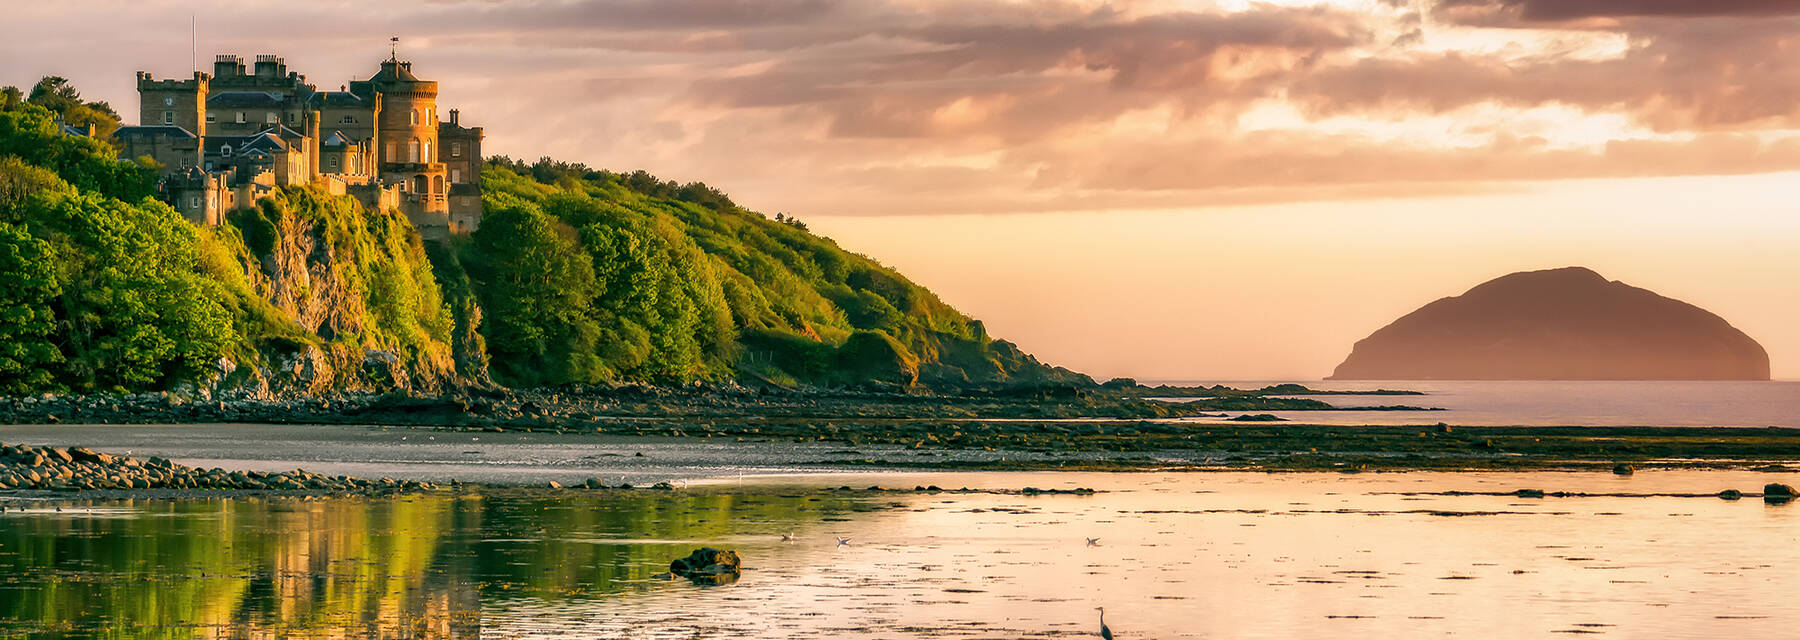 Culzean Castle seen from the beach as the sun sets. A heron stands on the foreshore. The silhouette of Ailsa Craig can also be seen in the Firth of Clyde.